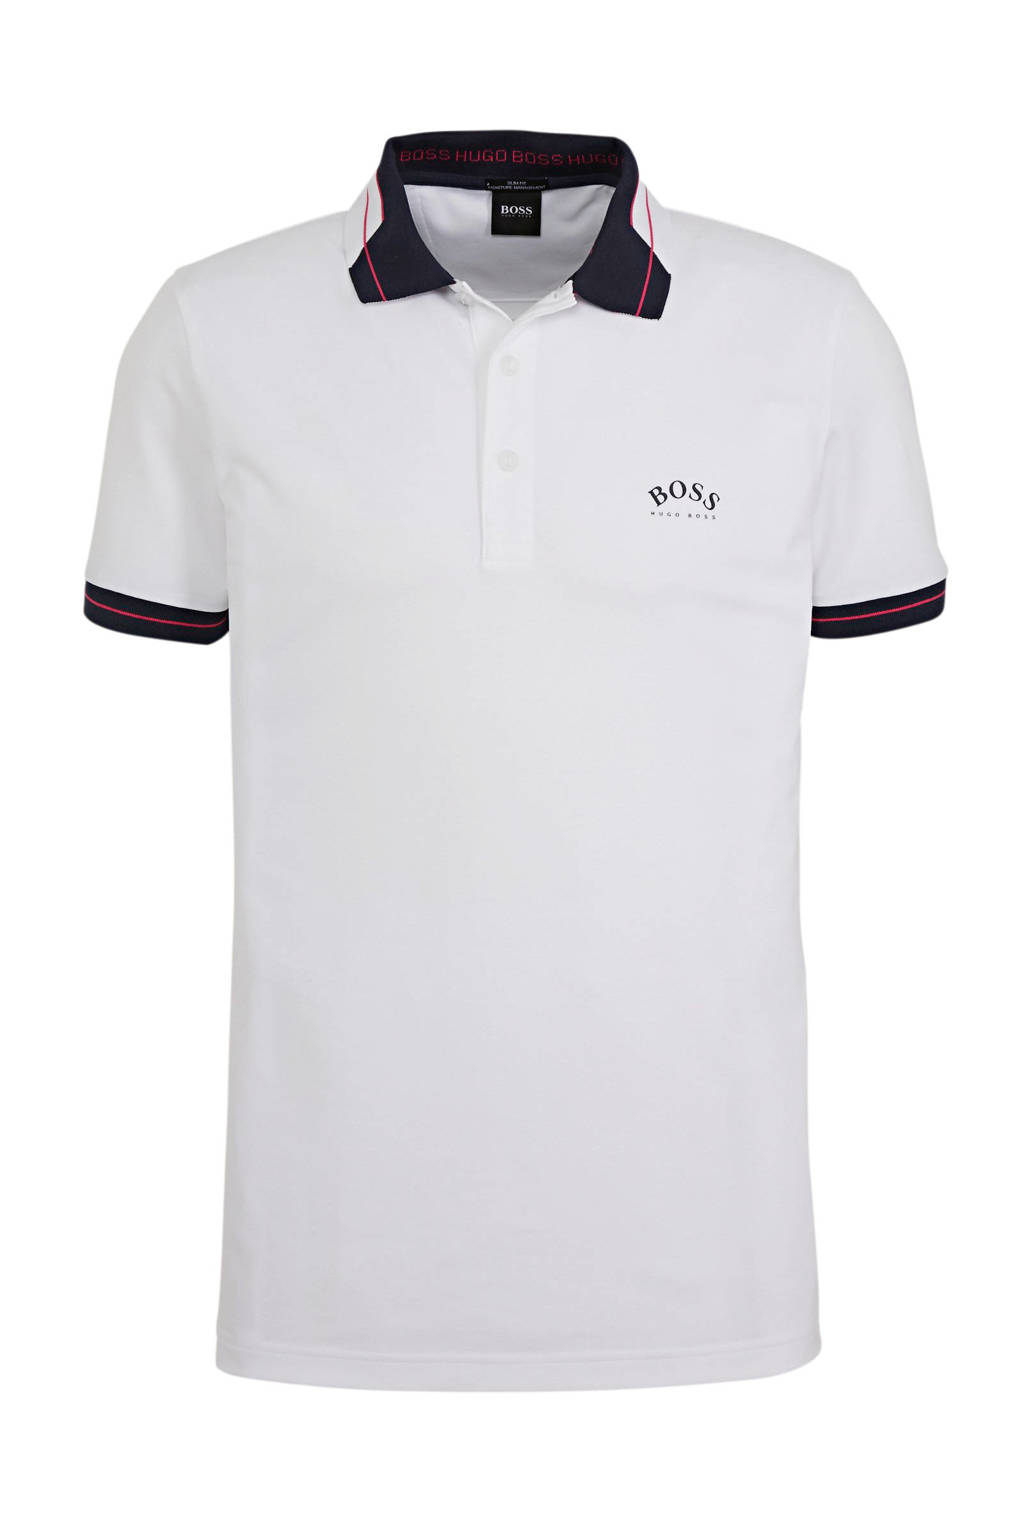 BOSS Athleisure regular fit polo met contrastbies wit, Wit/donkerblauw/rood